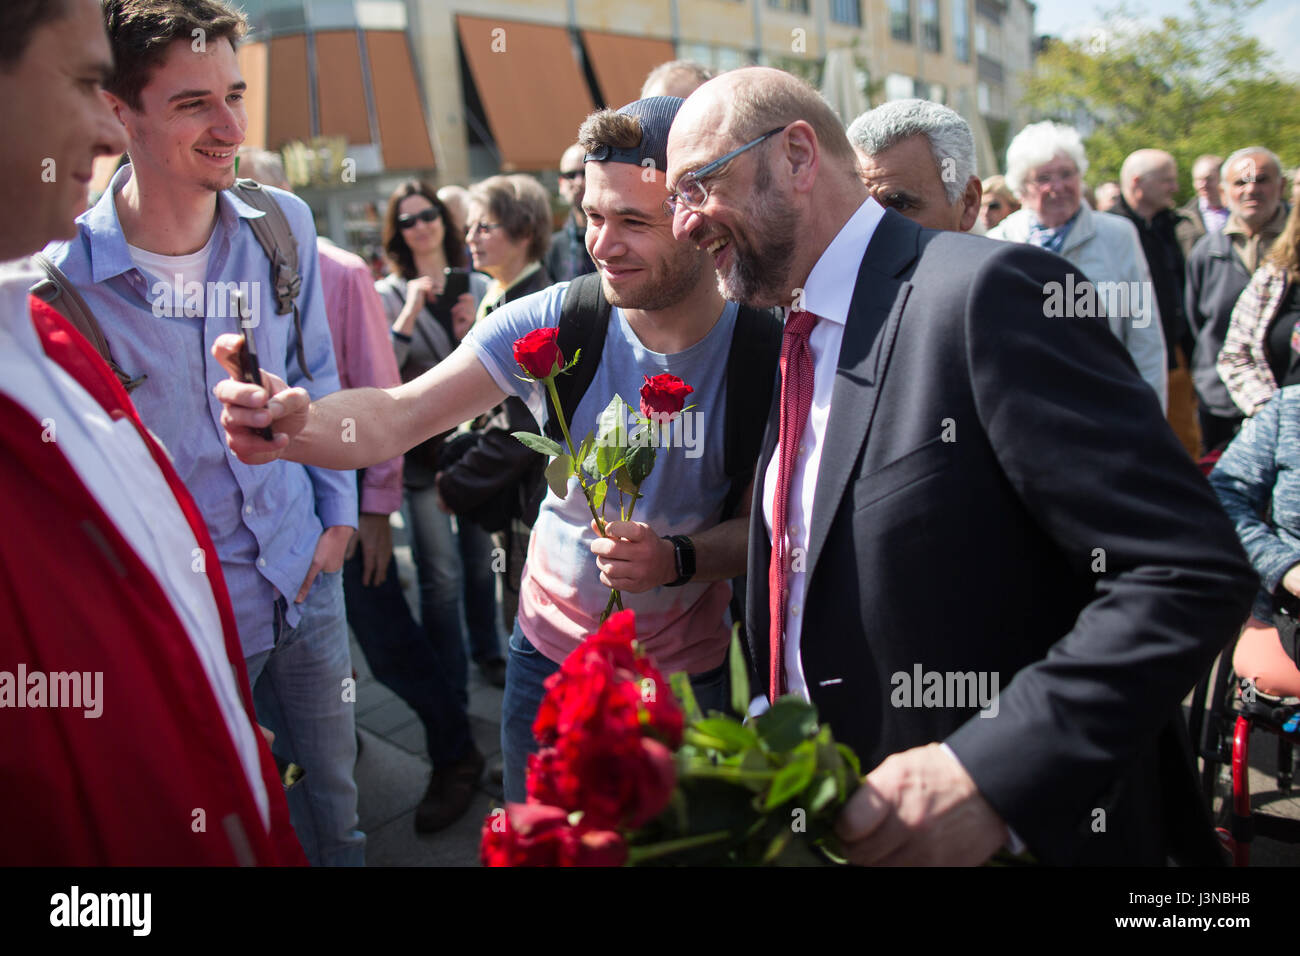 Mulheim and der Ruhr, Germany. 6th May, 2017. The SPD's candidate for Chancellor, Martin Schulz (R), taking - Stock Image